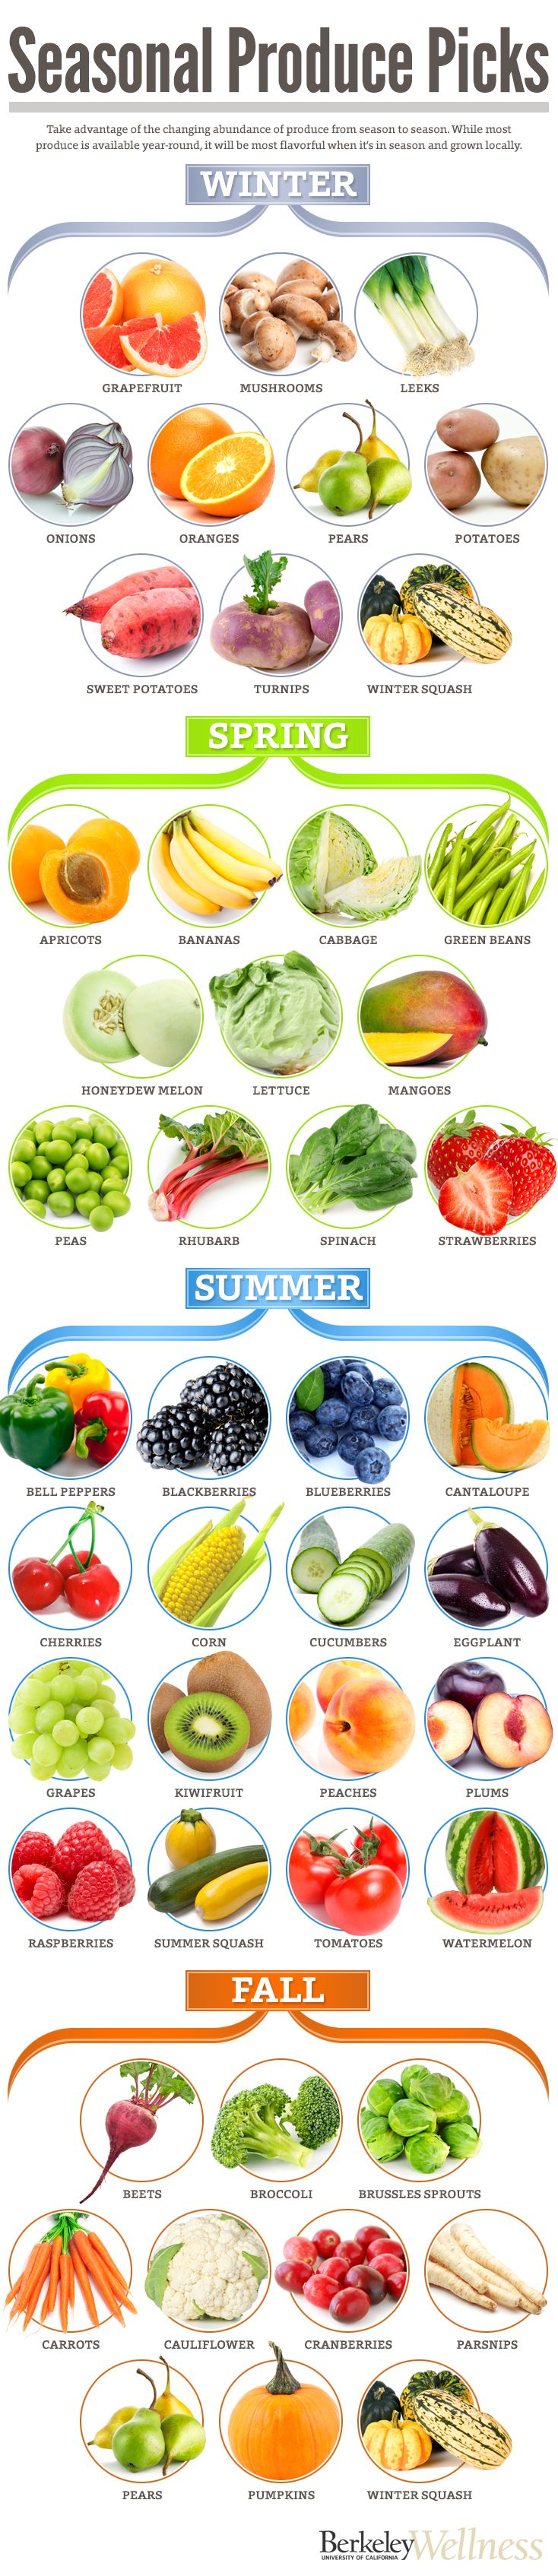 If eating healthy food is important to you, you want to be friendly to the environment or maybe you're looking to save some money, our handy infographic guide breaks down the produce that's in season so you can eat healthy all year round! http://www.berkeleywellness.com/healthy-eating/food/article/seasonal-produce-picks/?ap=2012